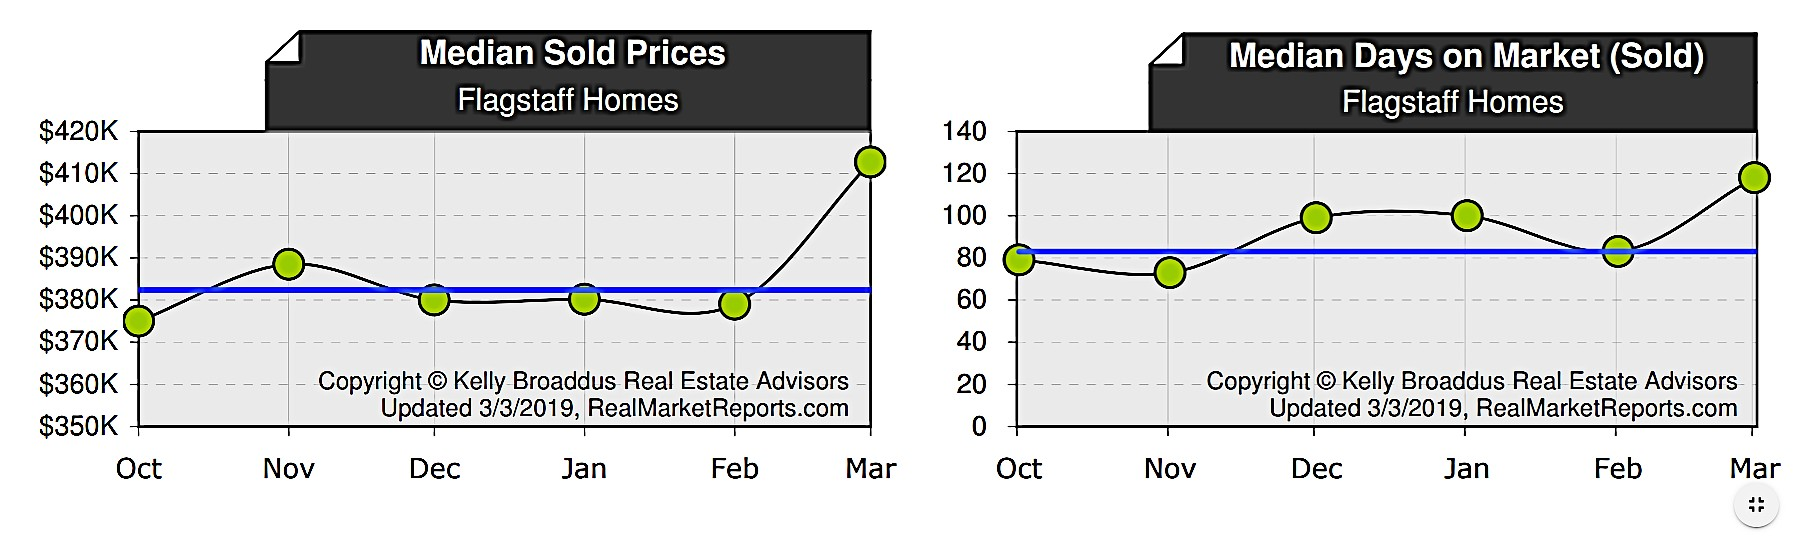 Flagstaff Median Home Price and Days on Market